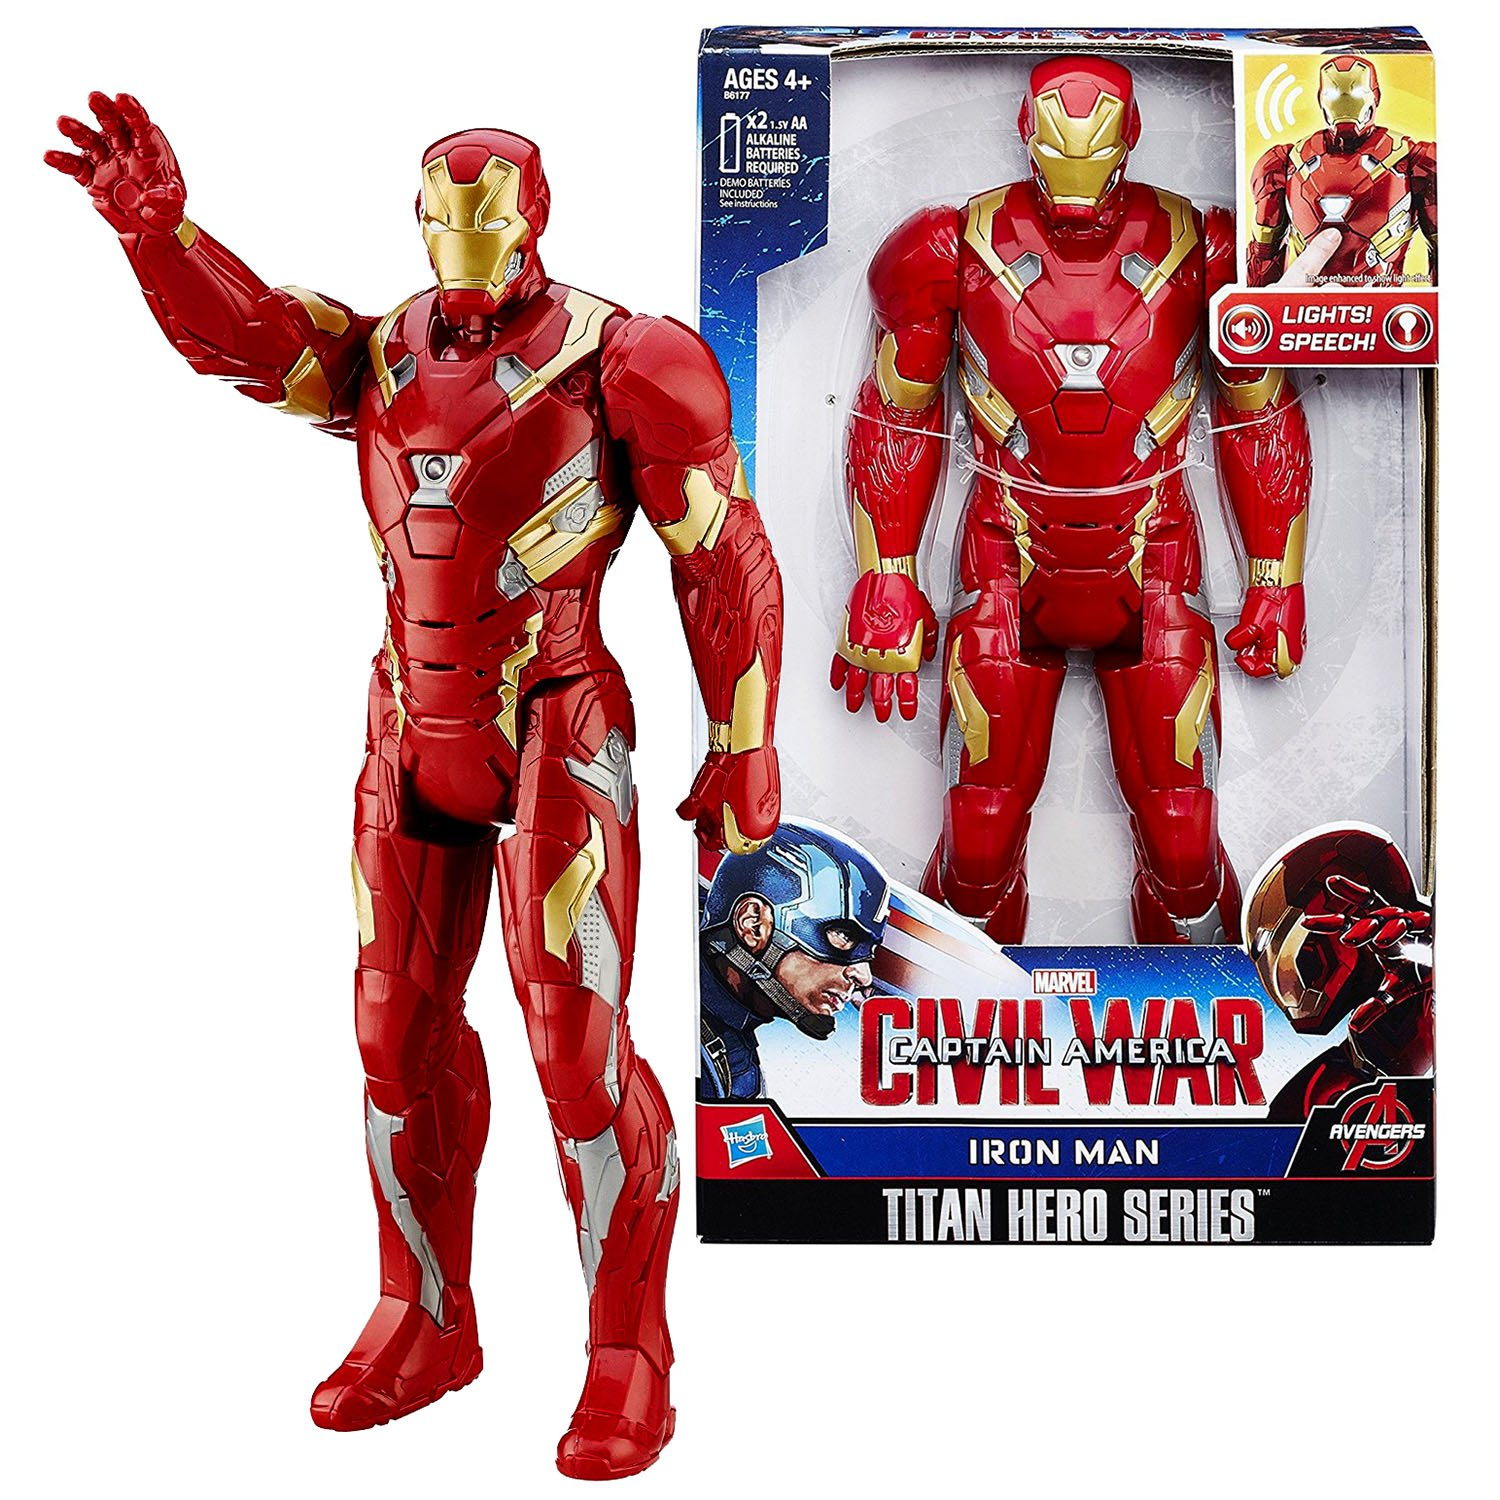 Marvel Year 2015 Captain America Civil War Titan Hero Series 12 Inch Tall Electronic Figure IRON MAN with Lights and Sounds HSBR